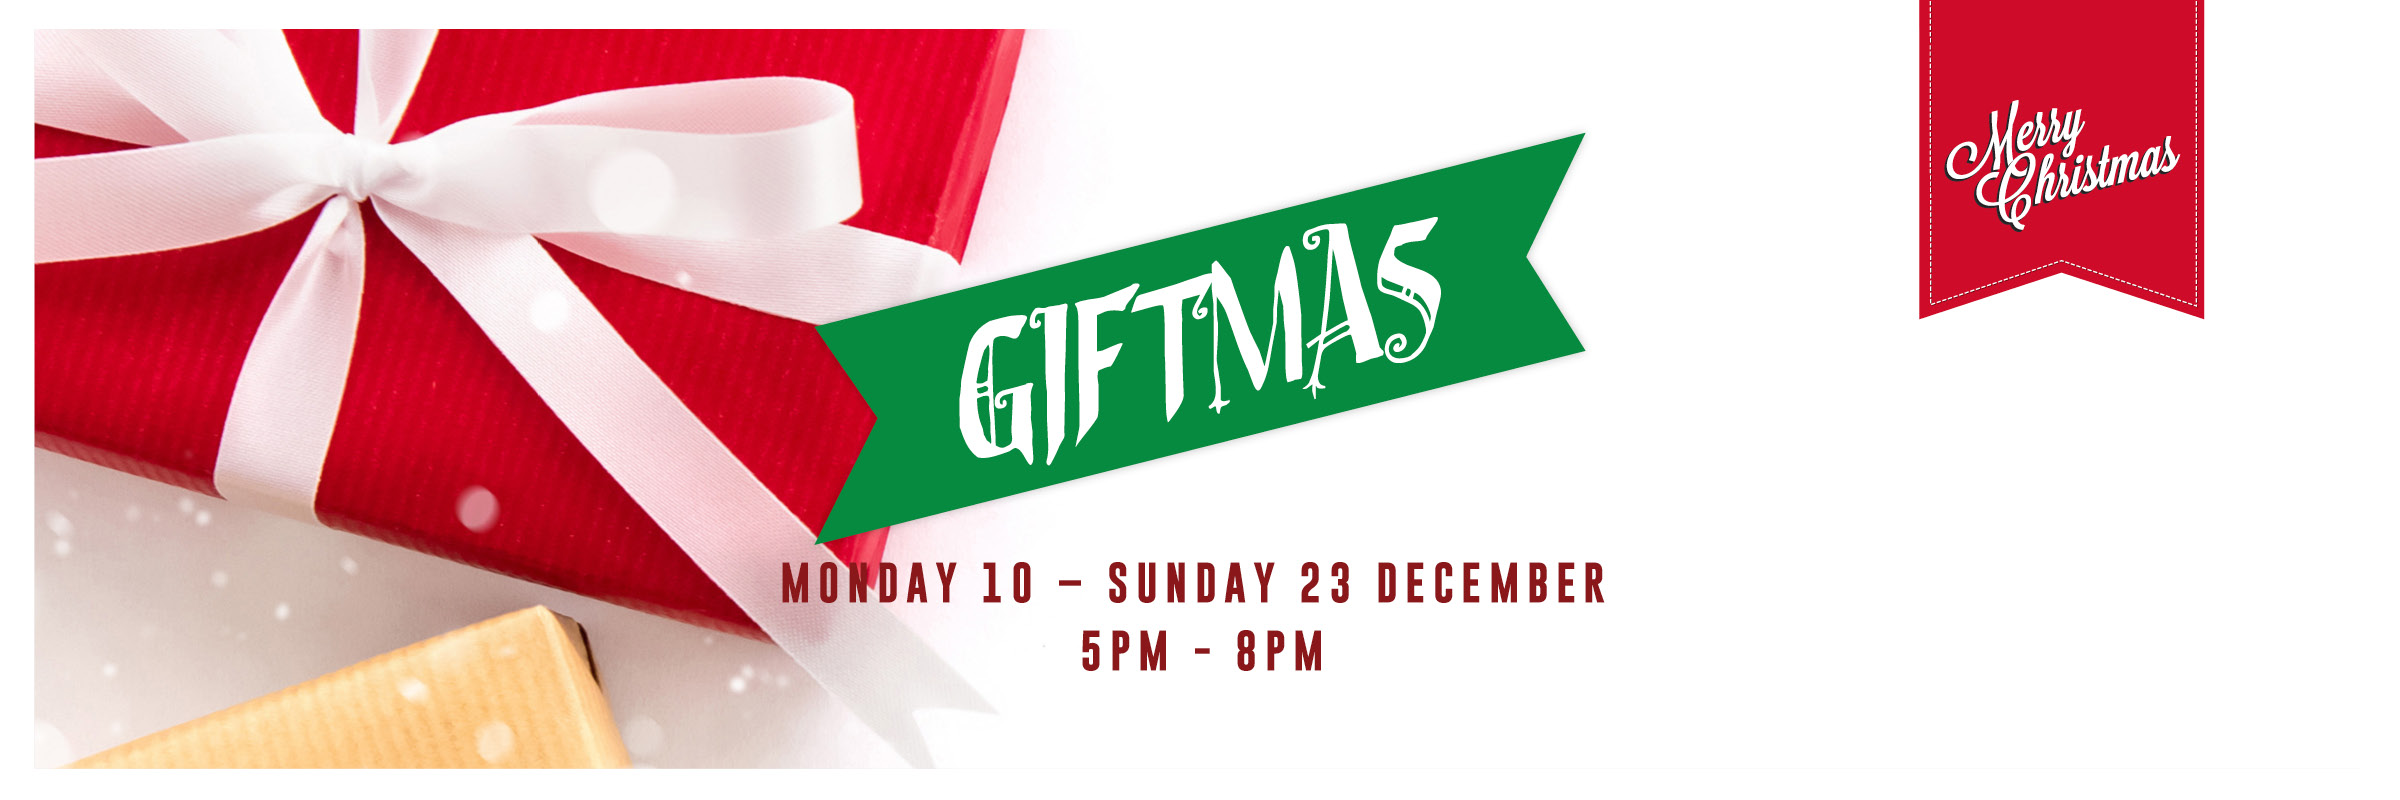 Giftmas at The Friary Guildford